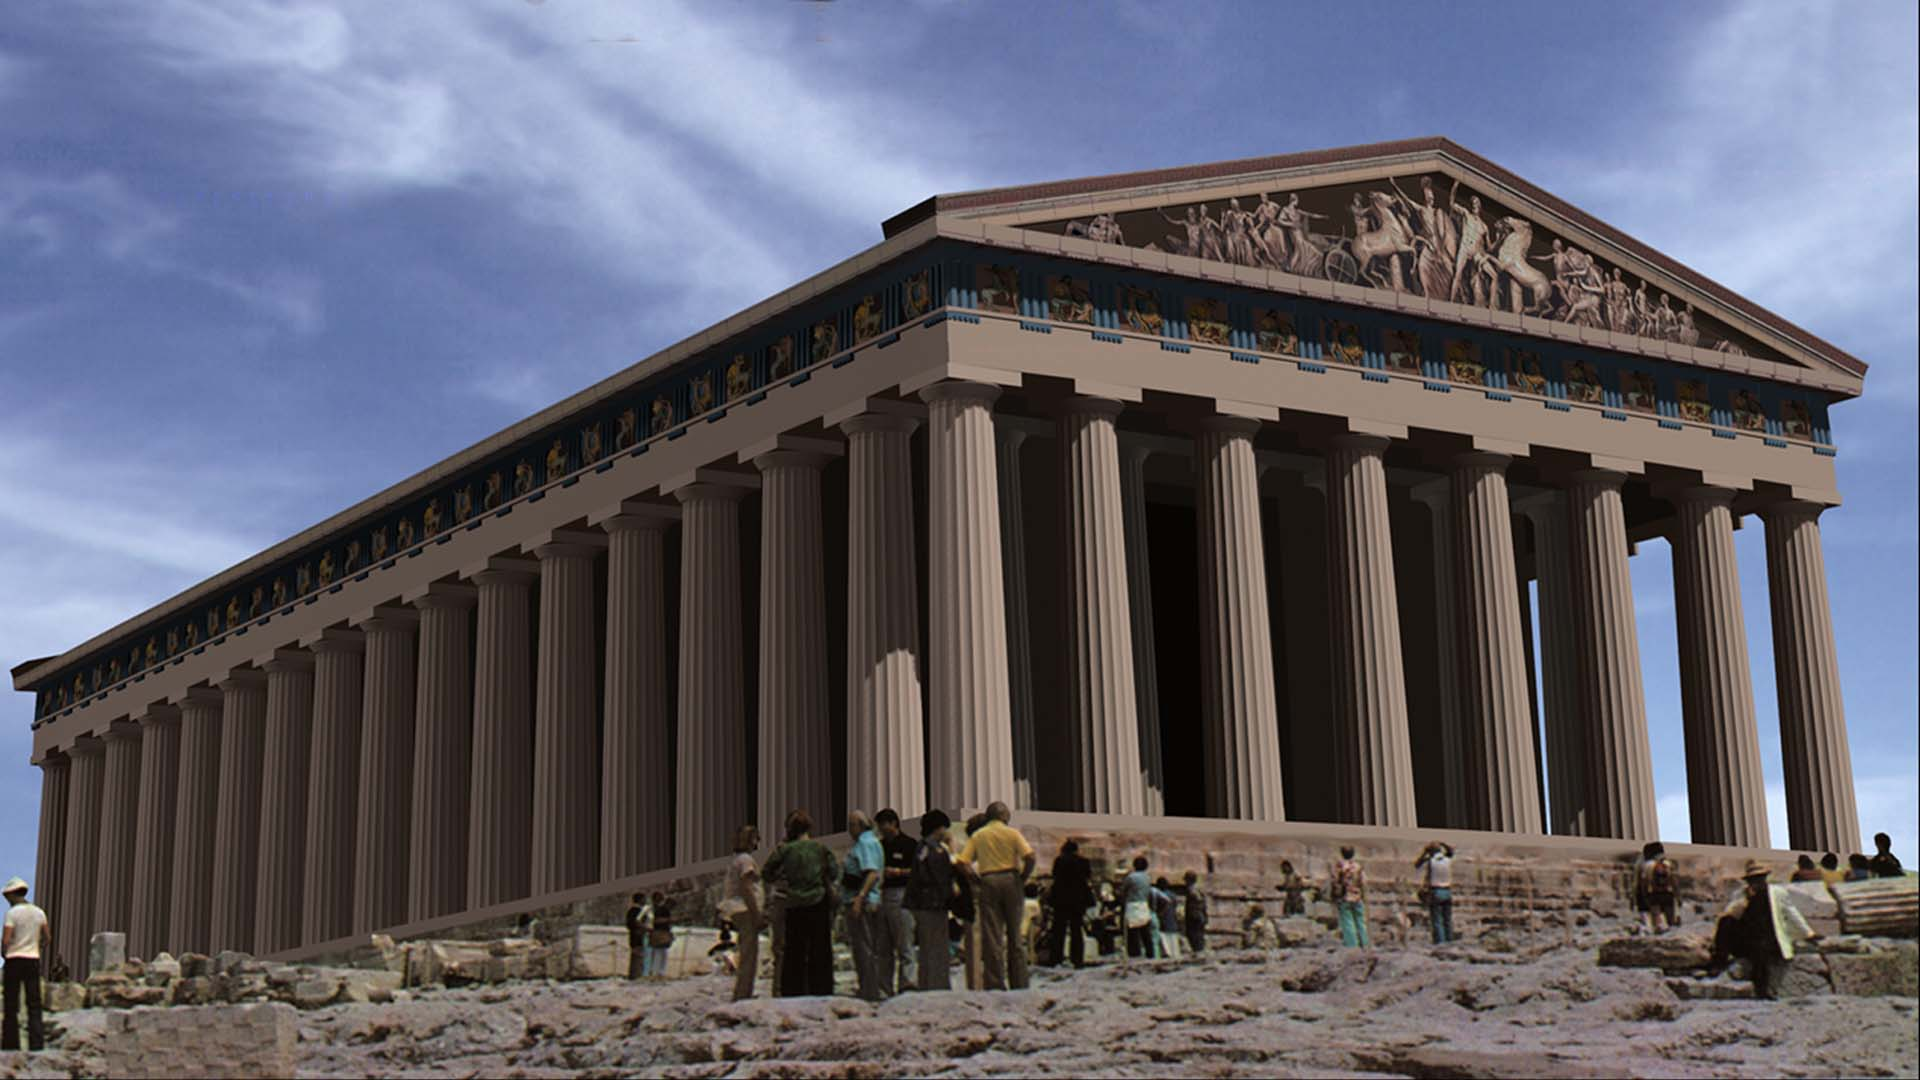 1995-97: The Parthenon